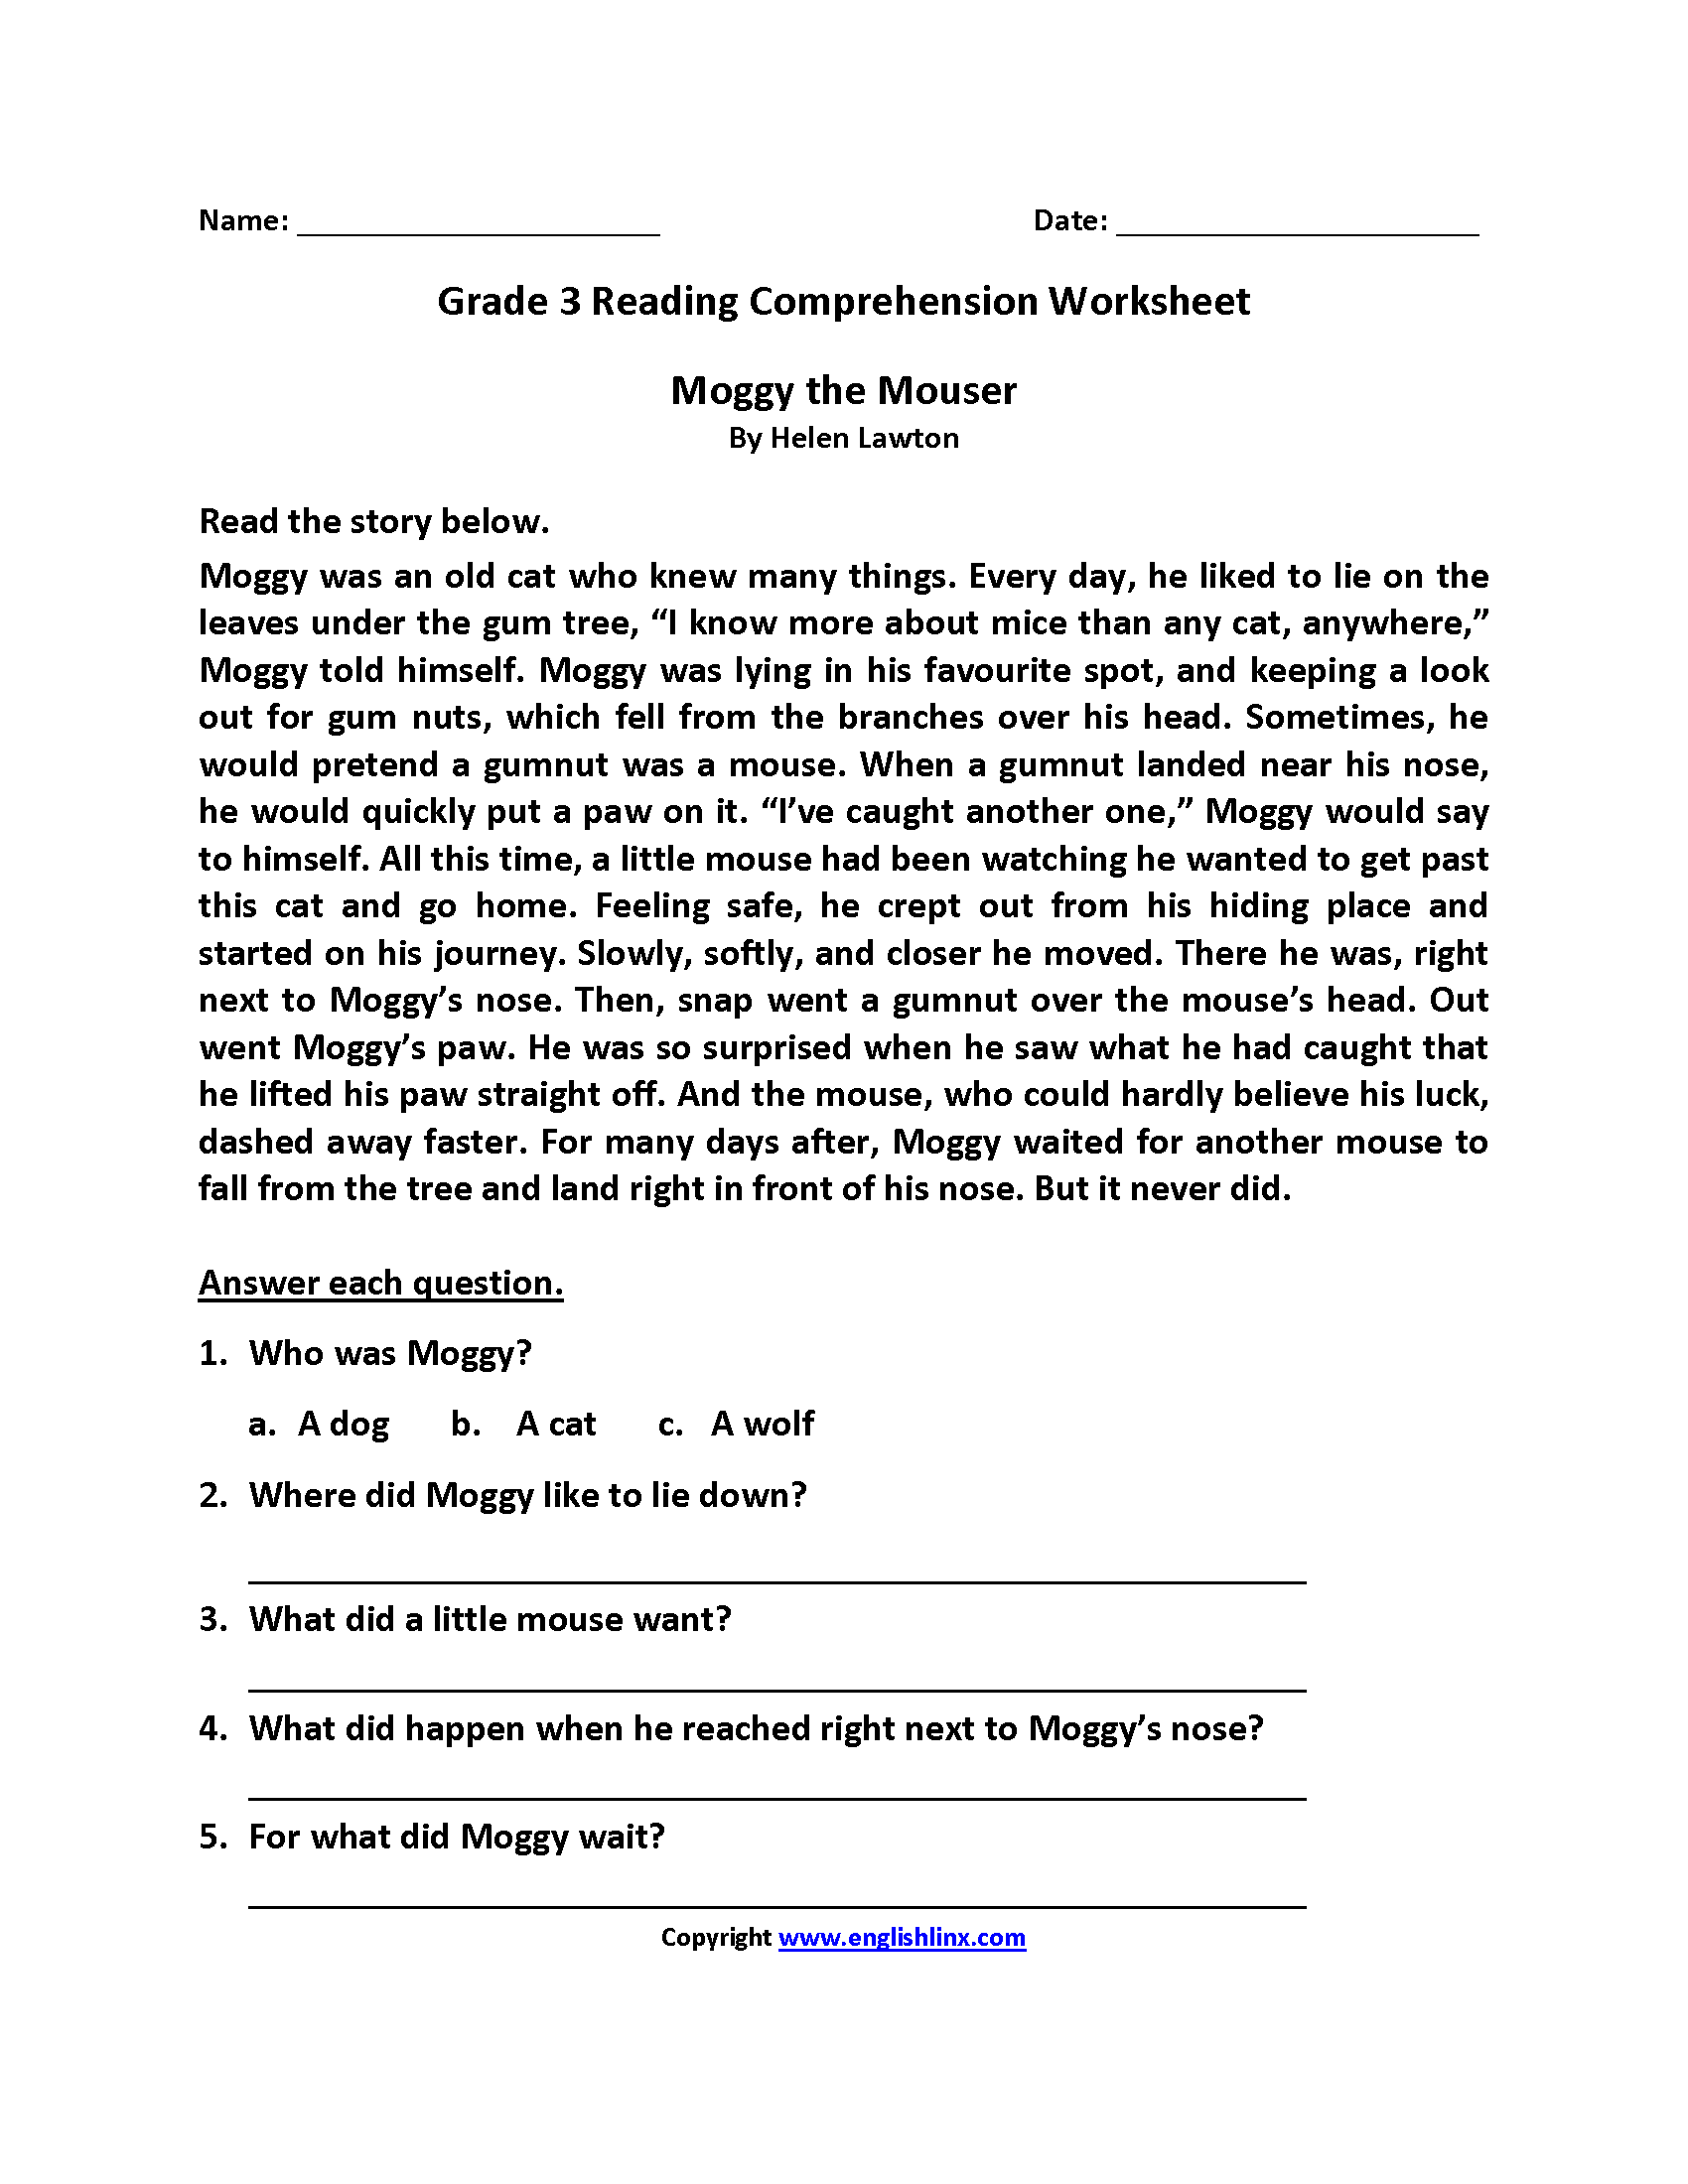 Reading Comprehension Worksheets | Third Grade - Galileo | Science ...